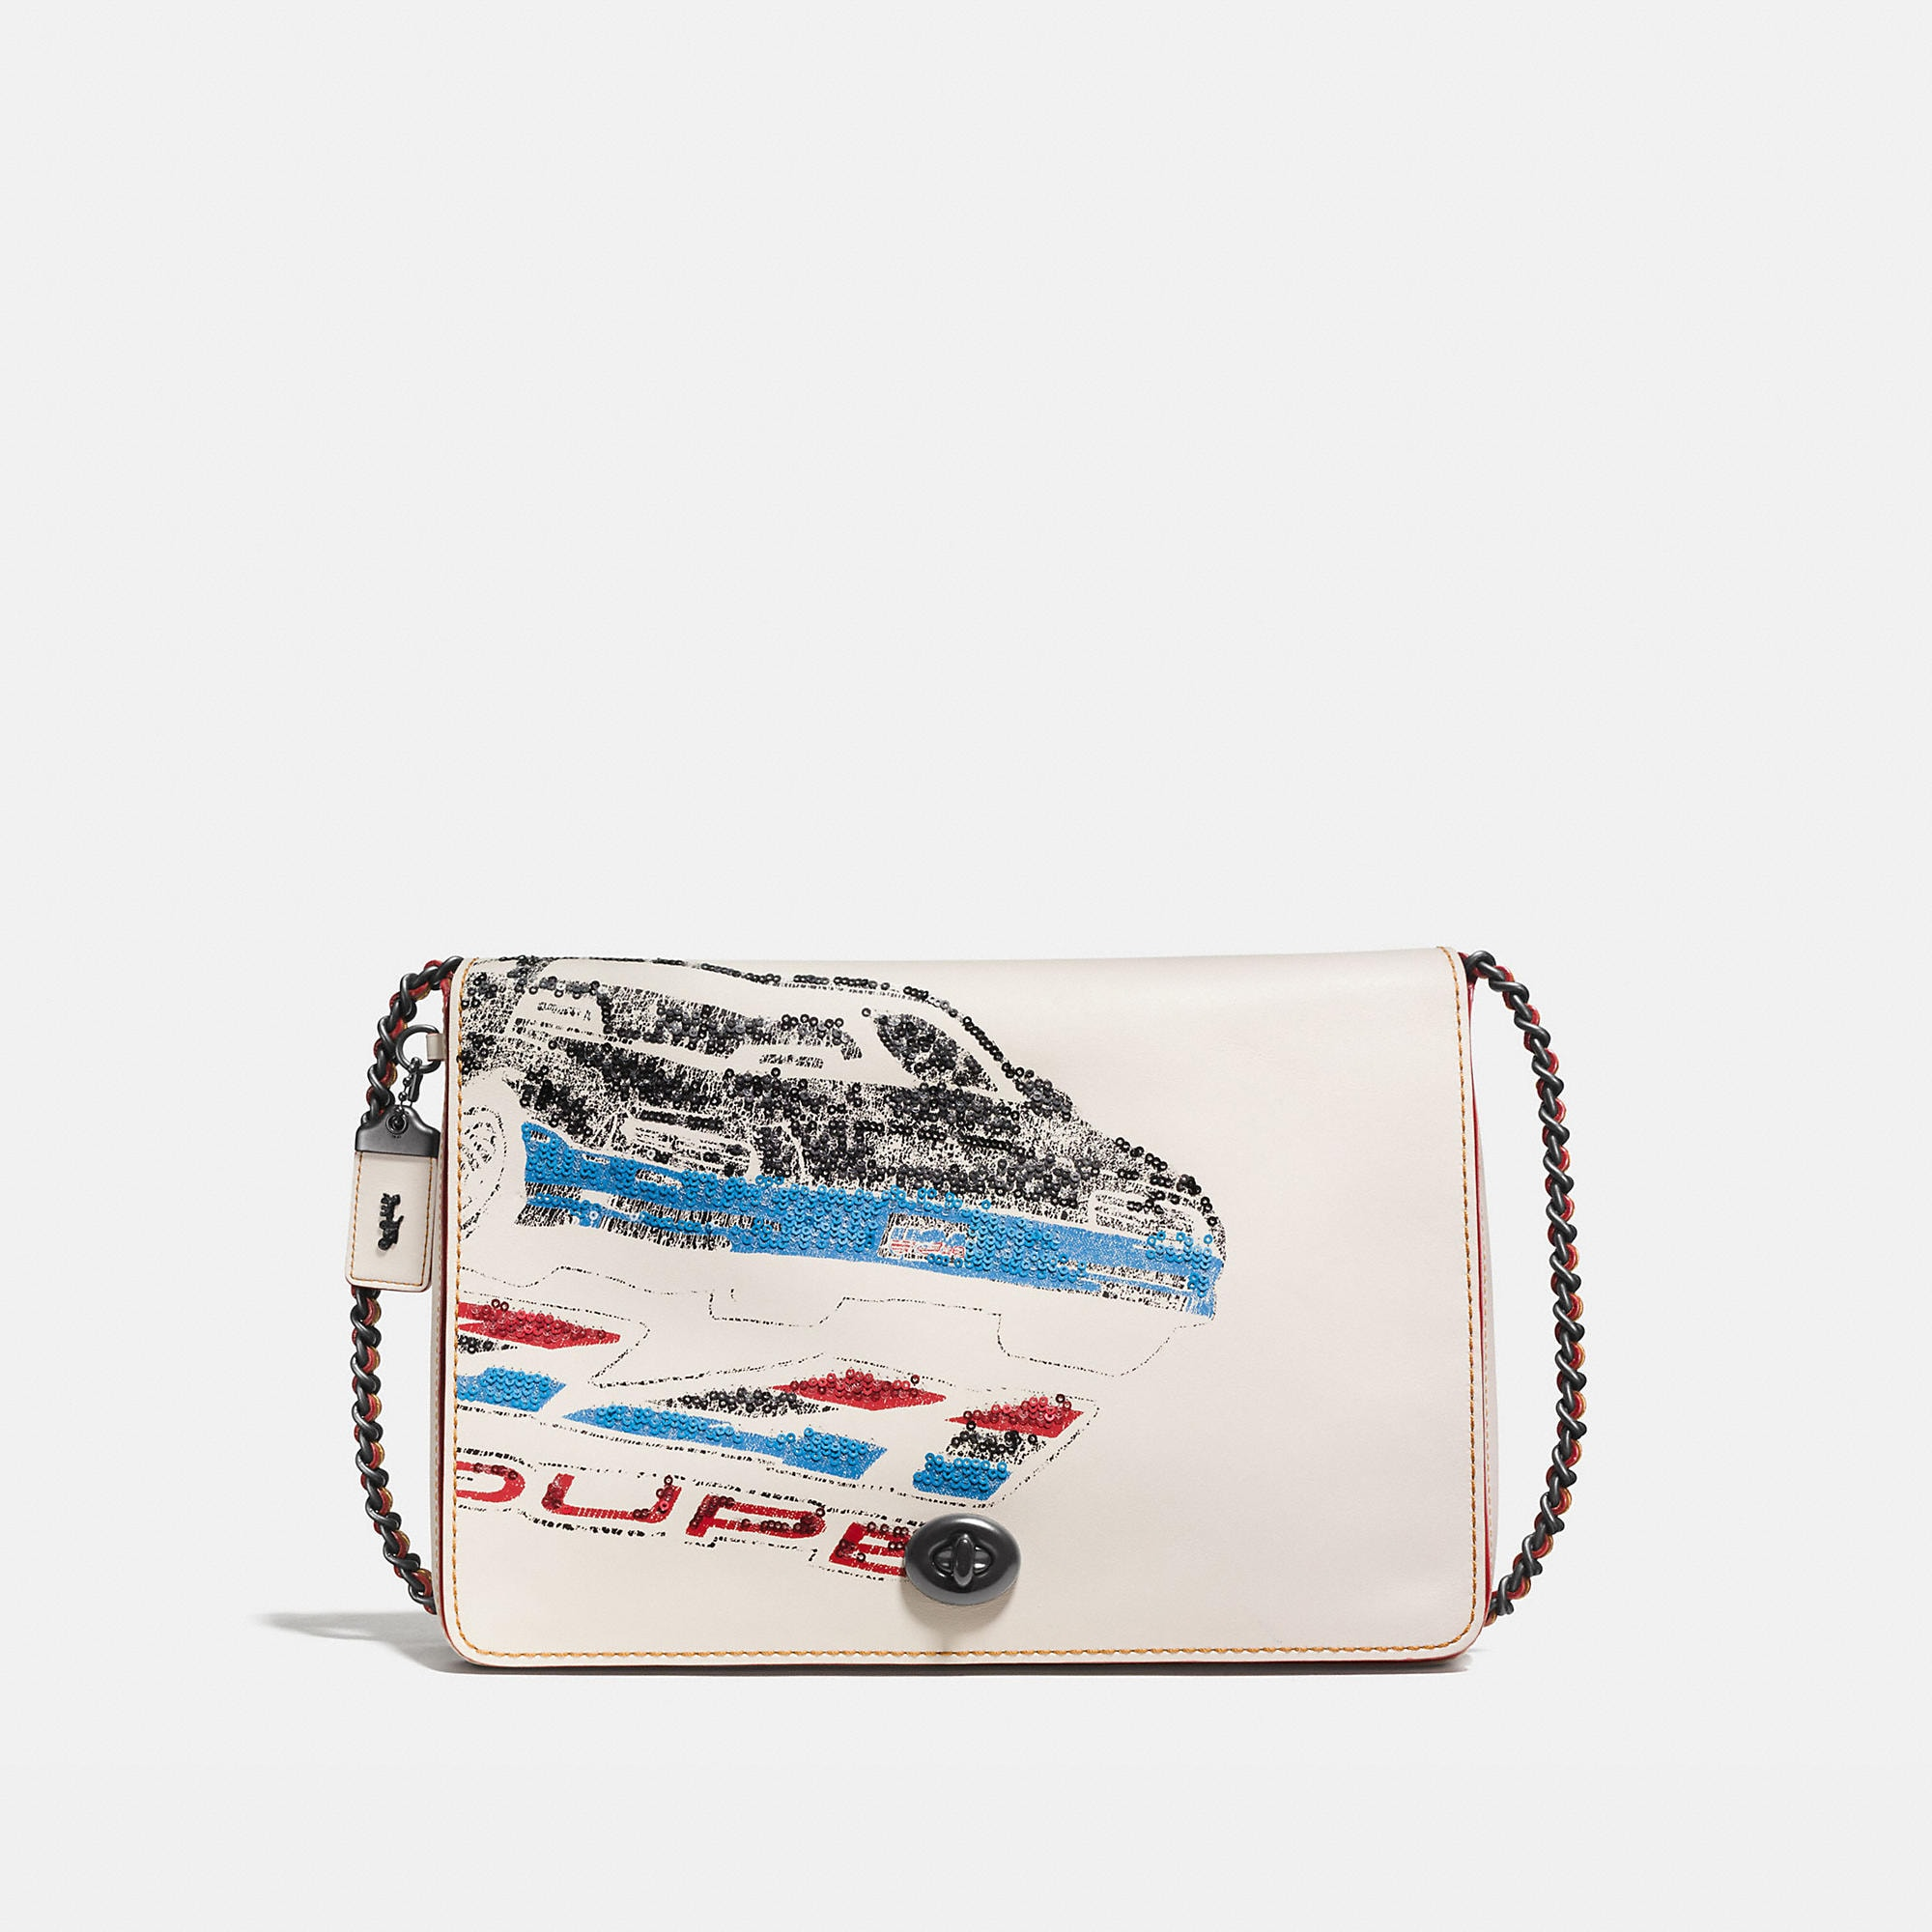 Coach Dinky Crossbody 32 In Glovetanned Leather With Car Embellishment